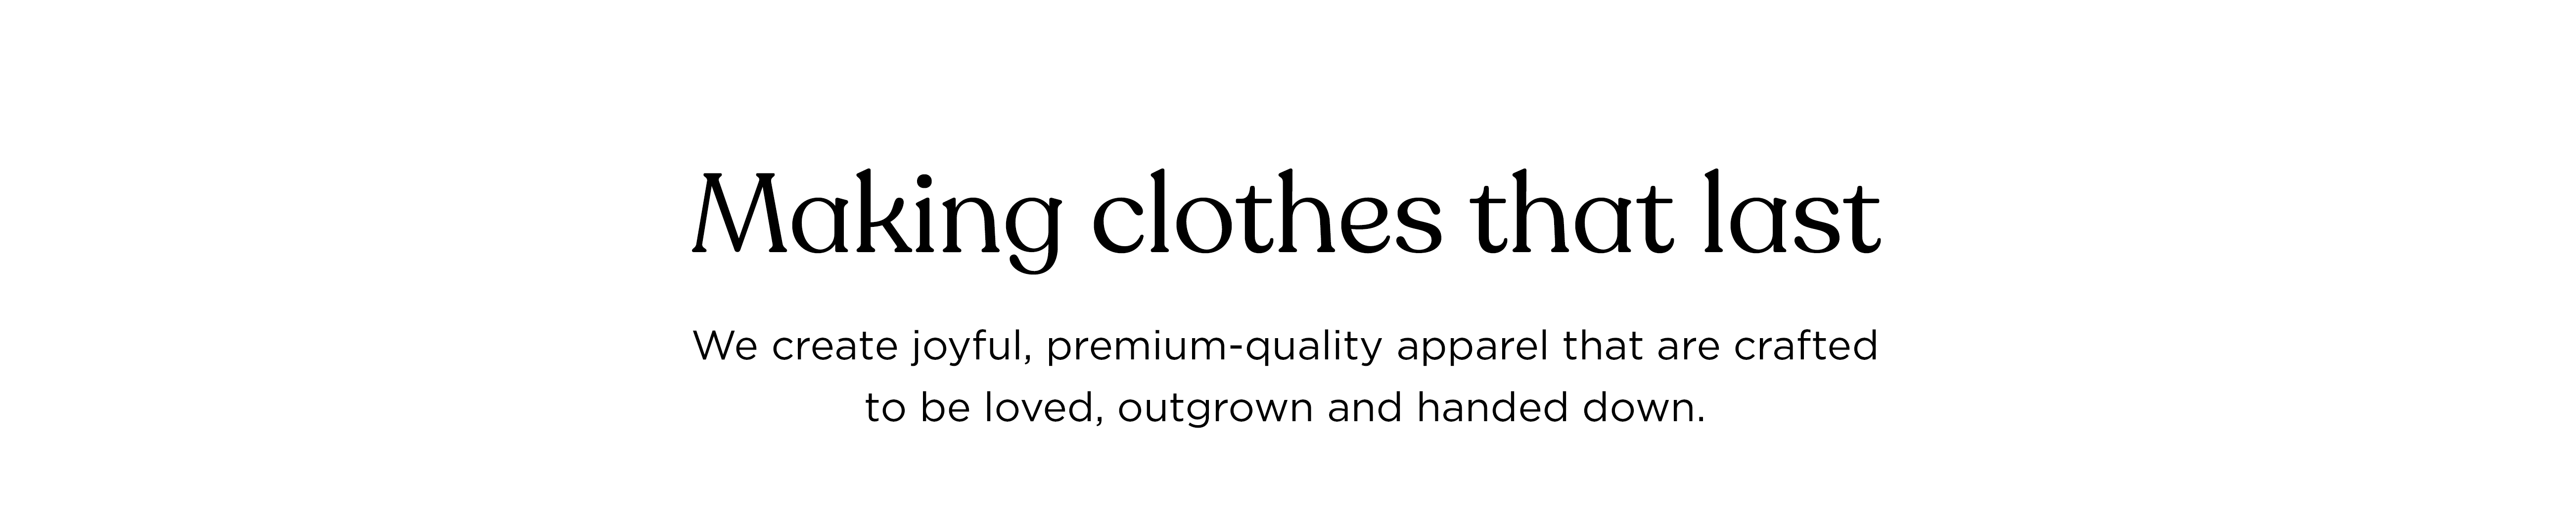 Making clothes that last: crafted to be loved, outgrown and handed down